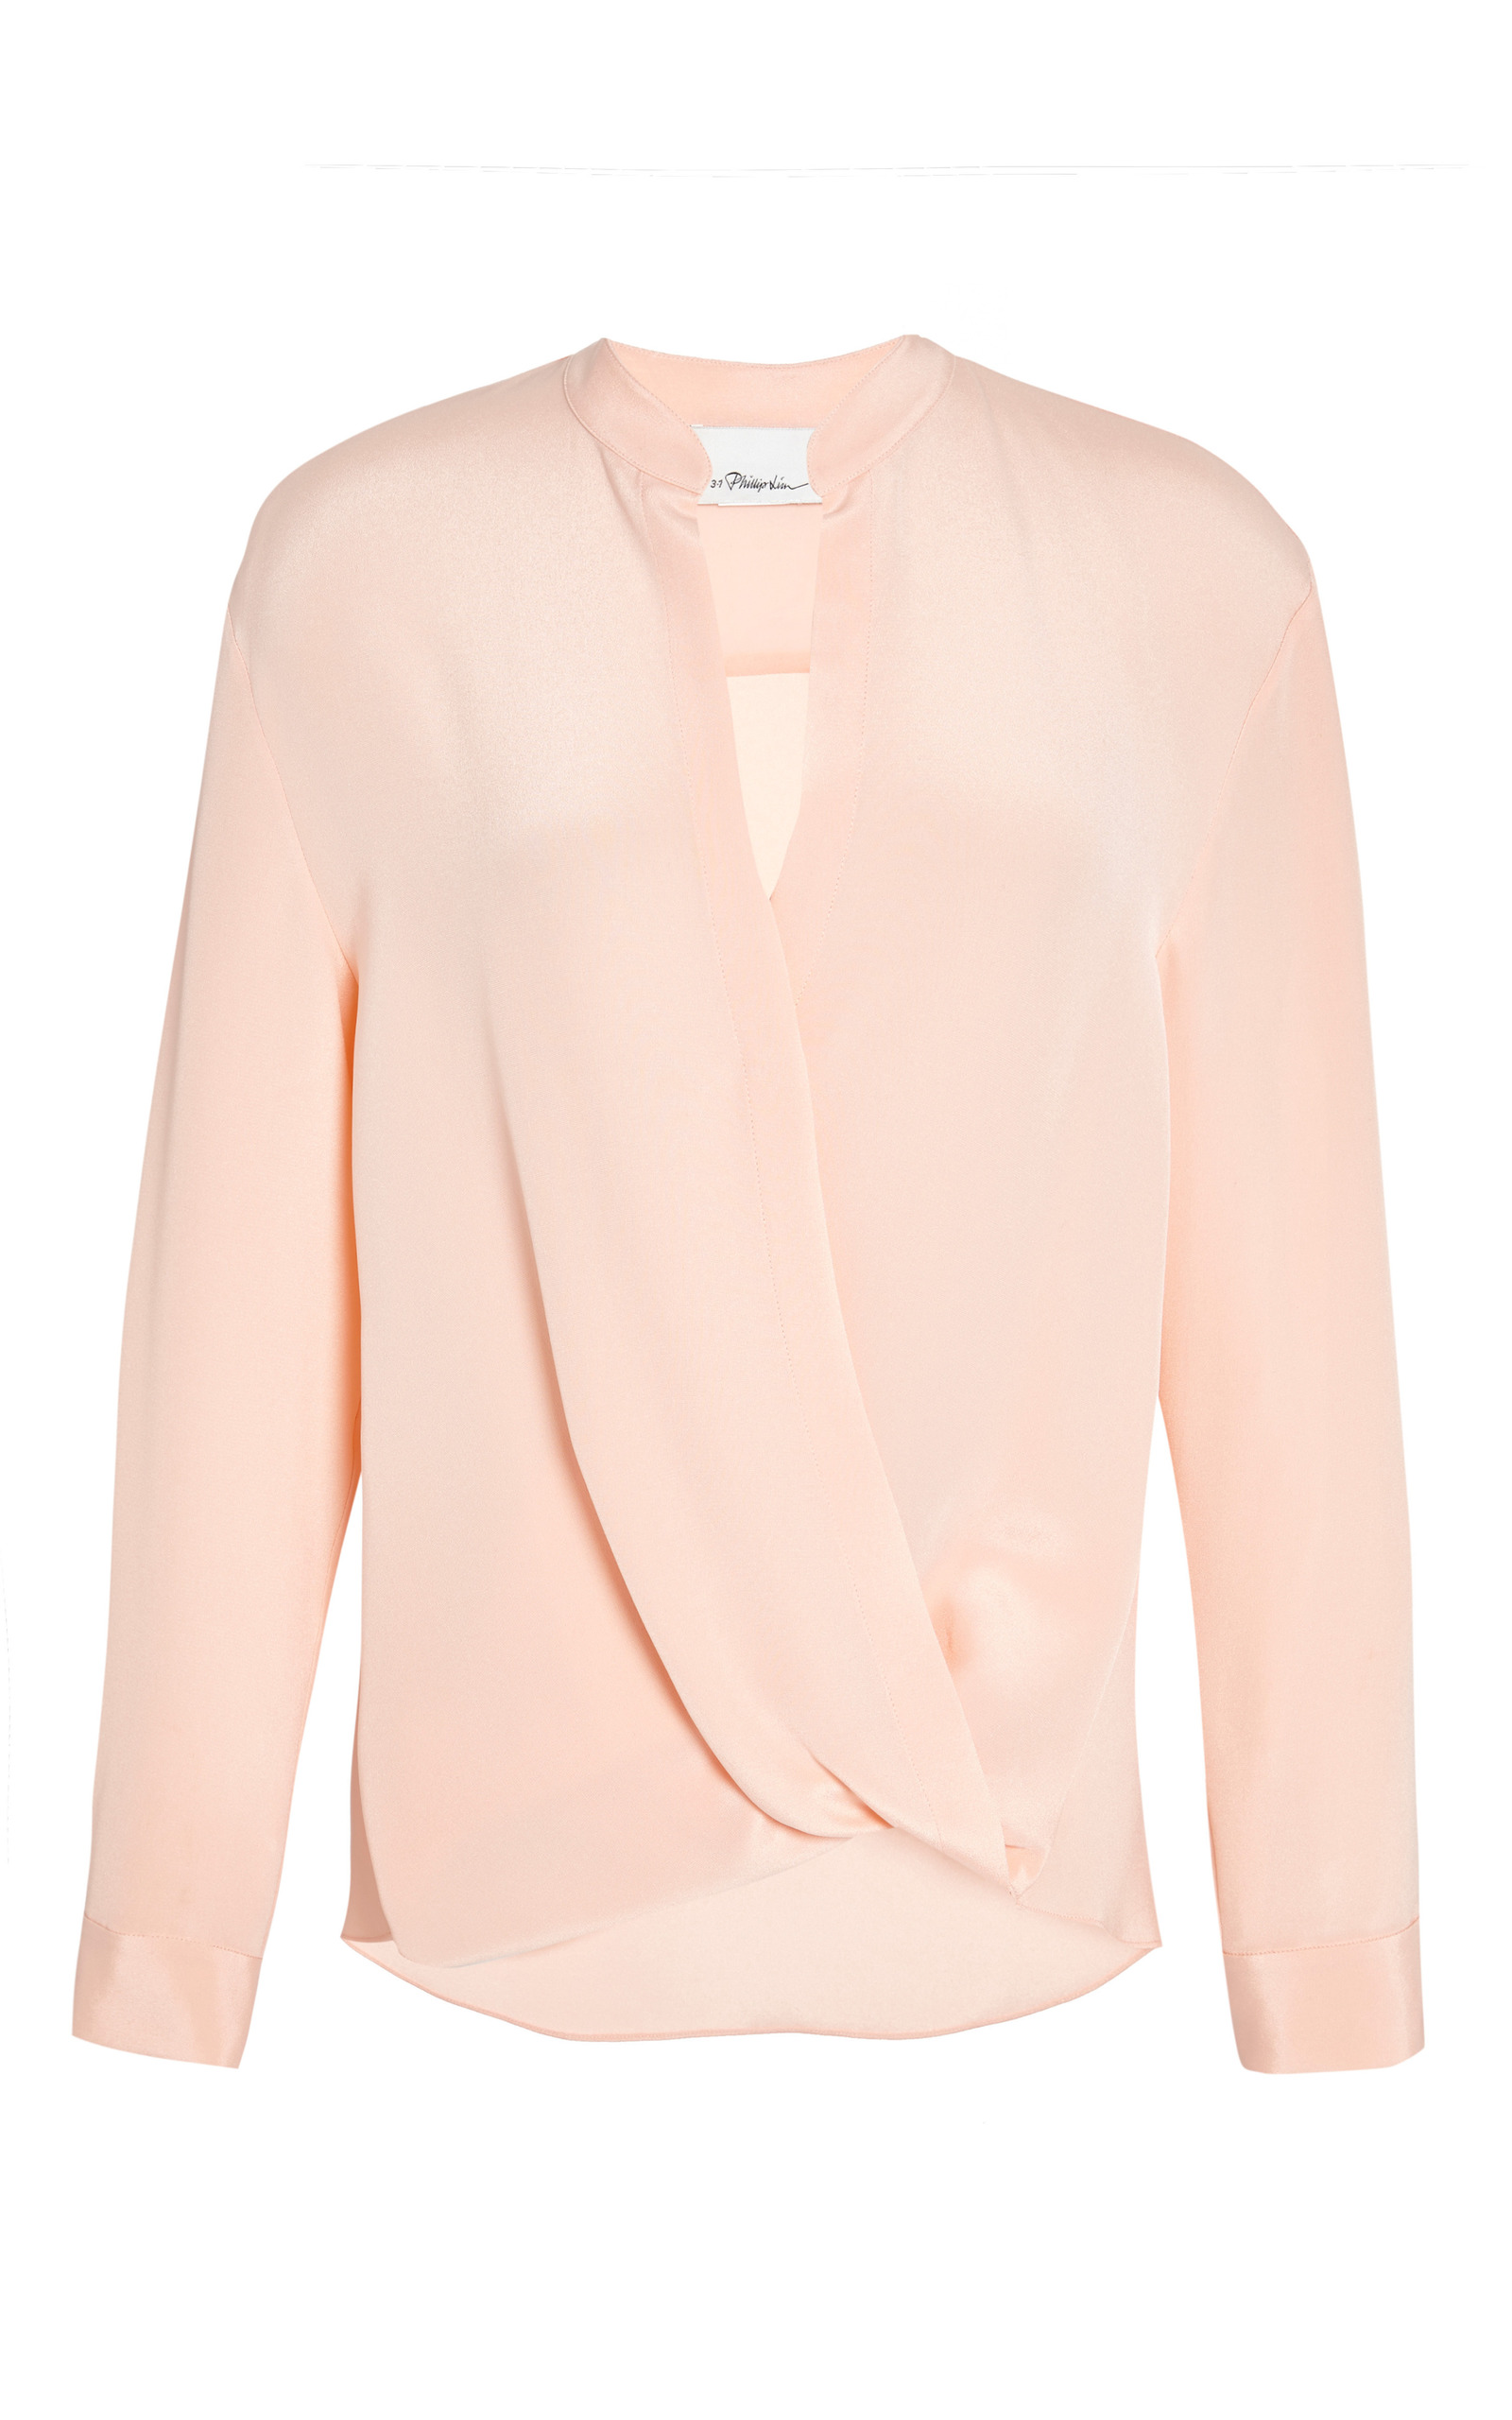 3b25ec096c508 3.1 Phillip LimSoftly Draped Blouse With Tucked In Collar In Peach Puff.  CLOSE. Loading